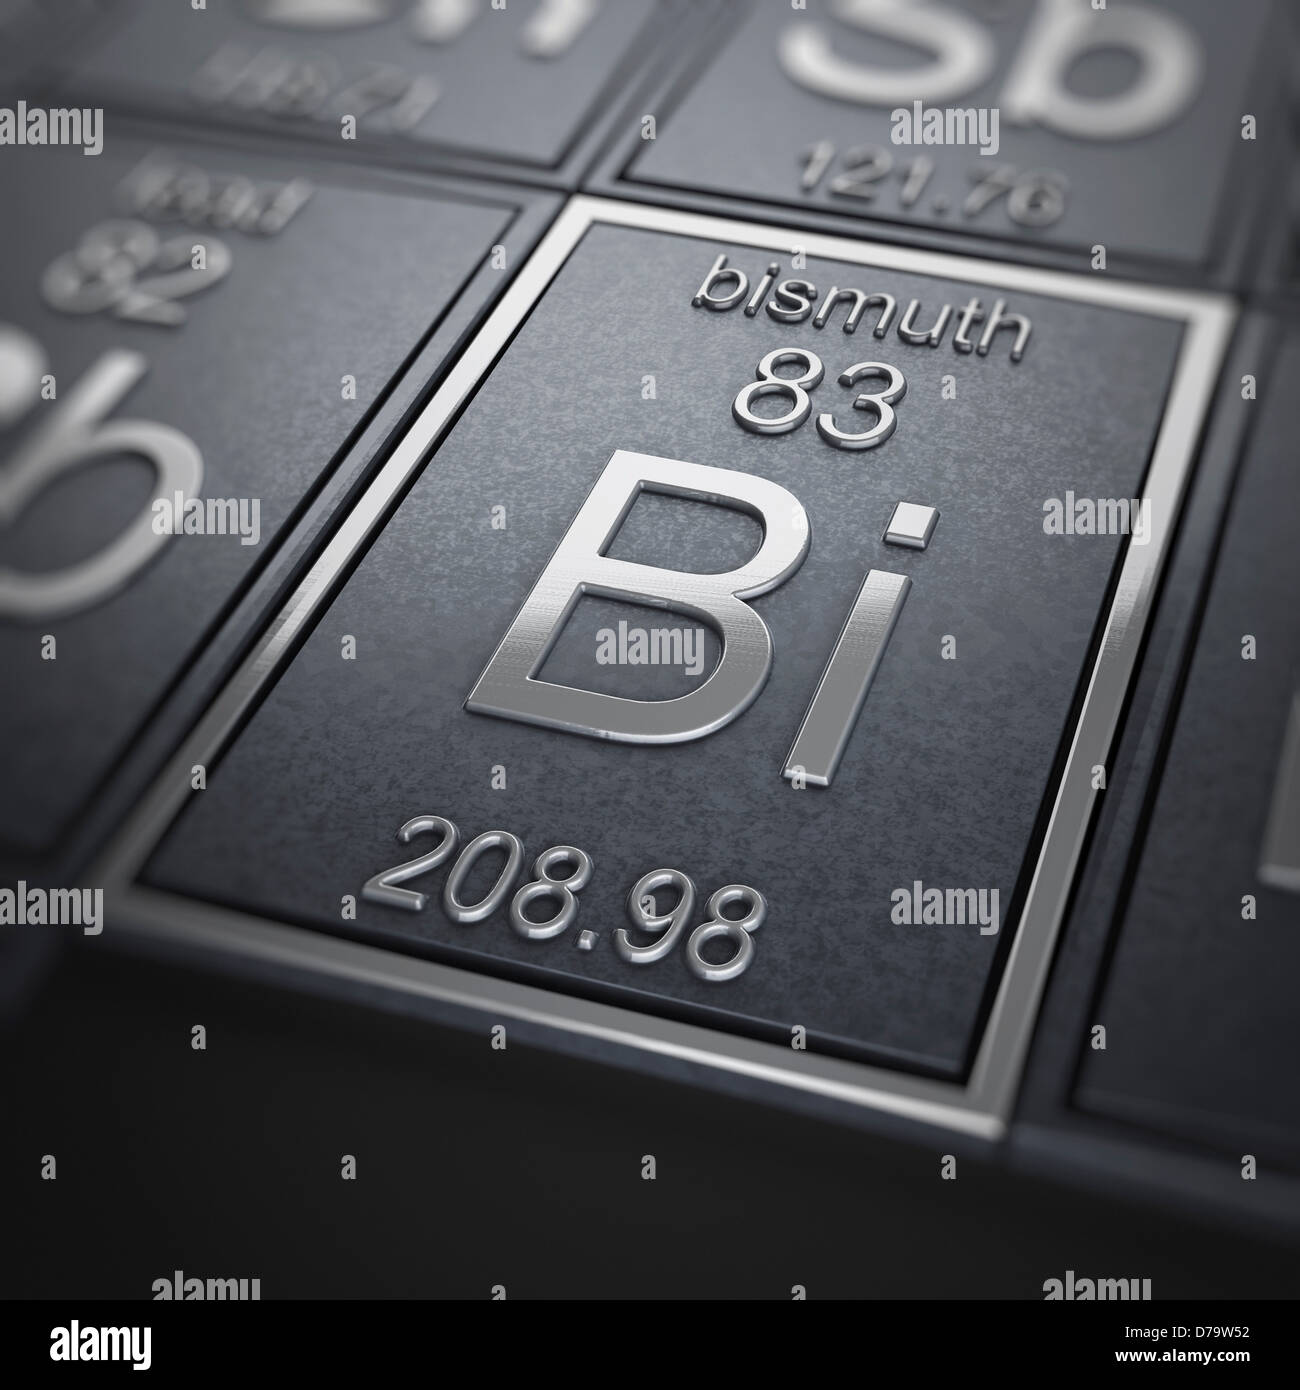 Bismuth chemical element stock photo royalty free image 56151006 bismuth chemical element buycottarizona